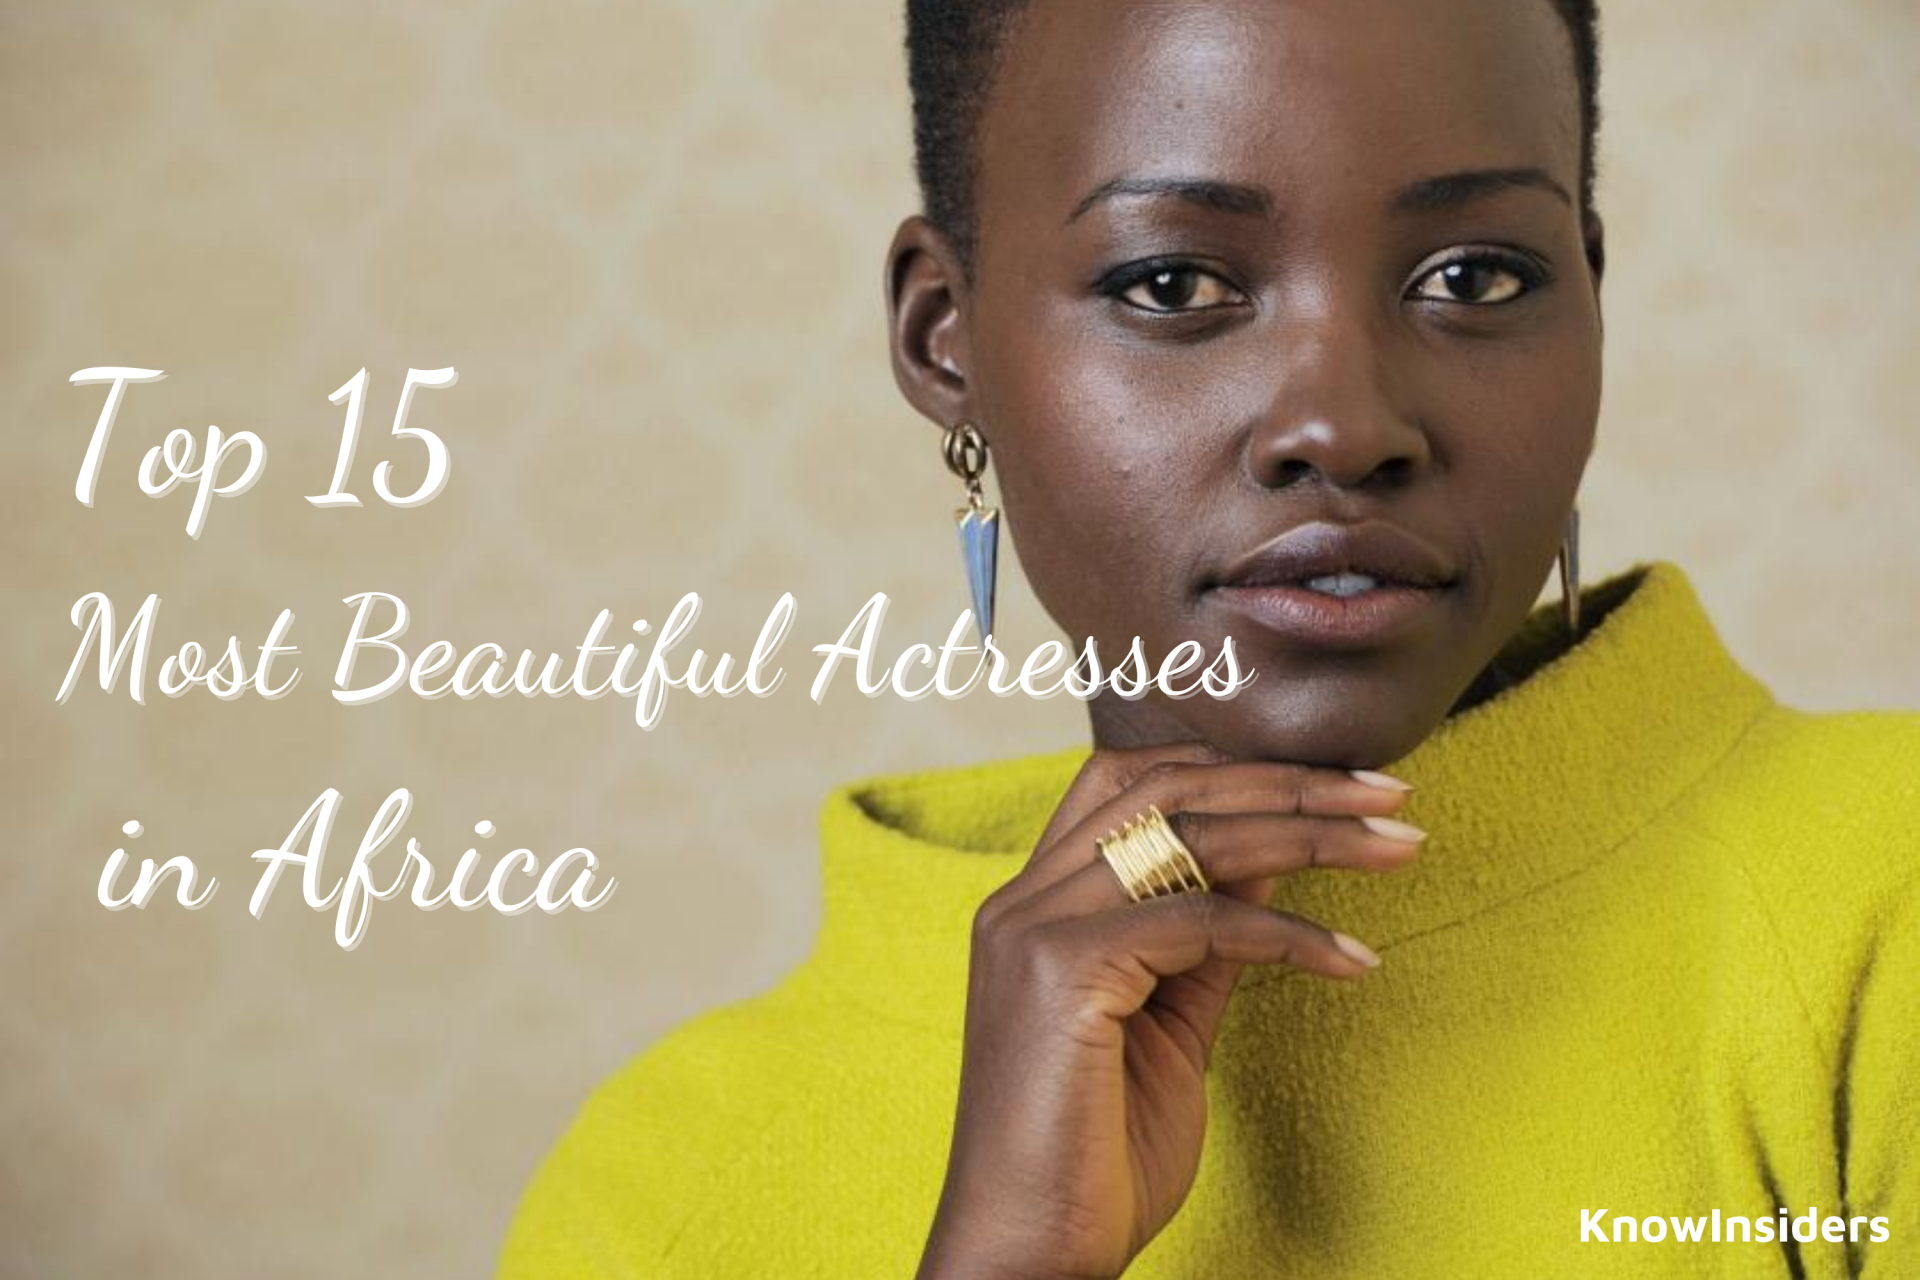 Top 15 Most Beautiful Actresses of Africa